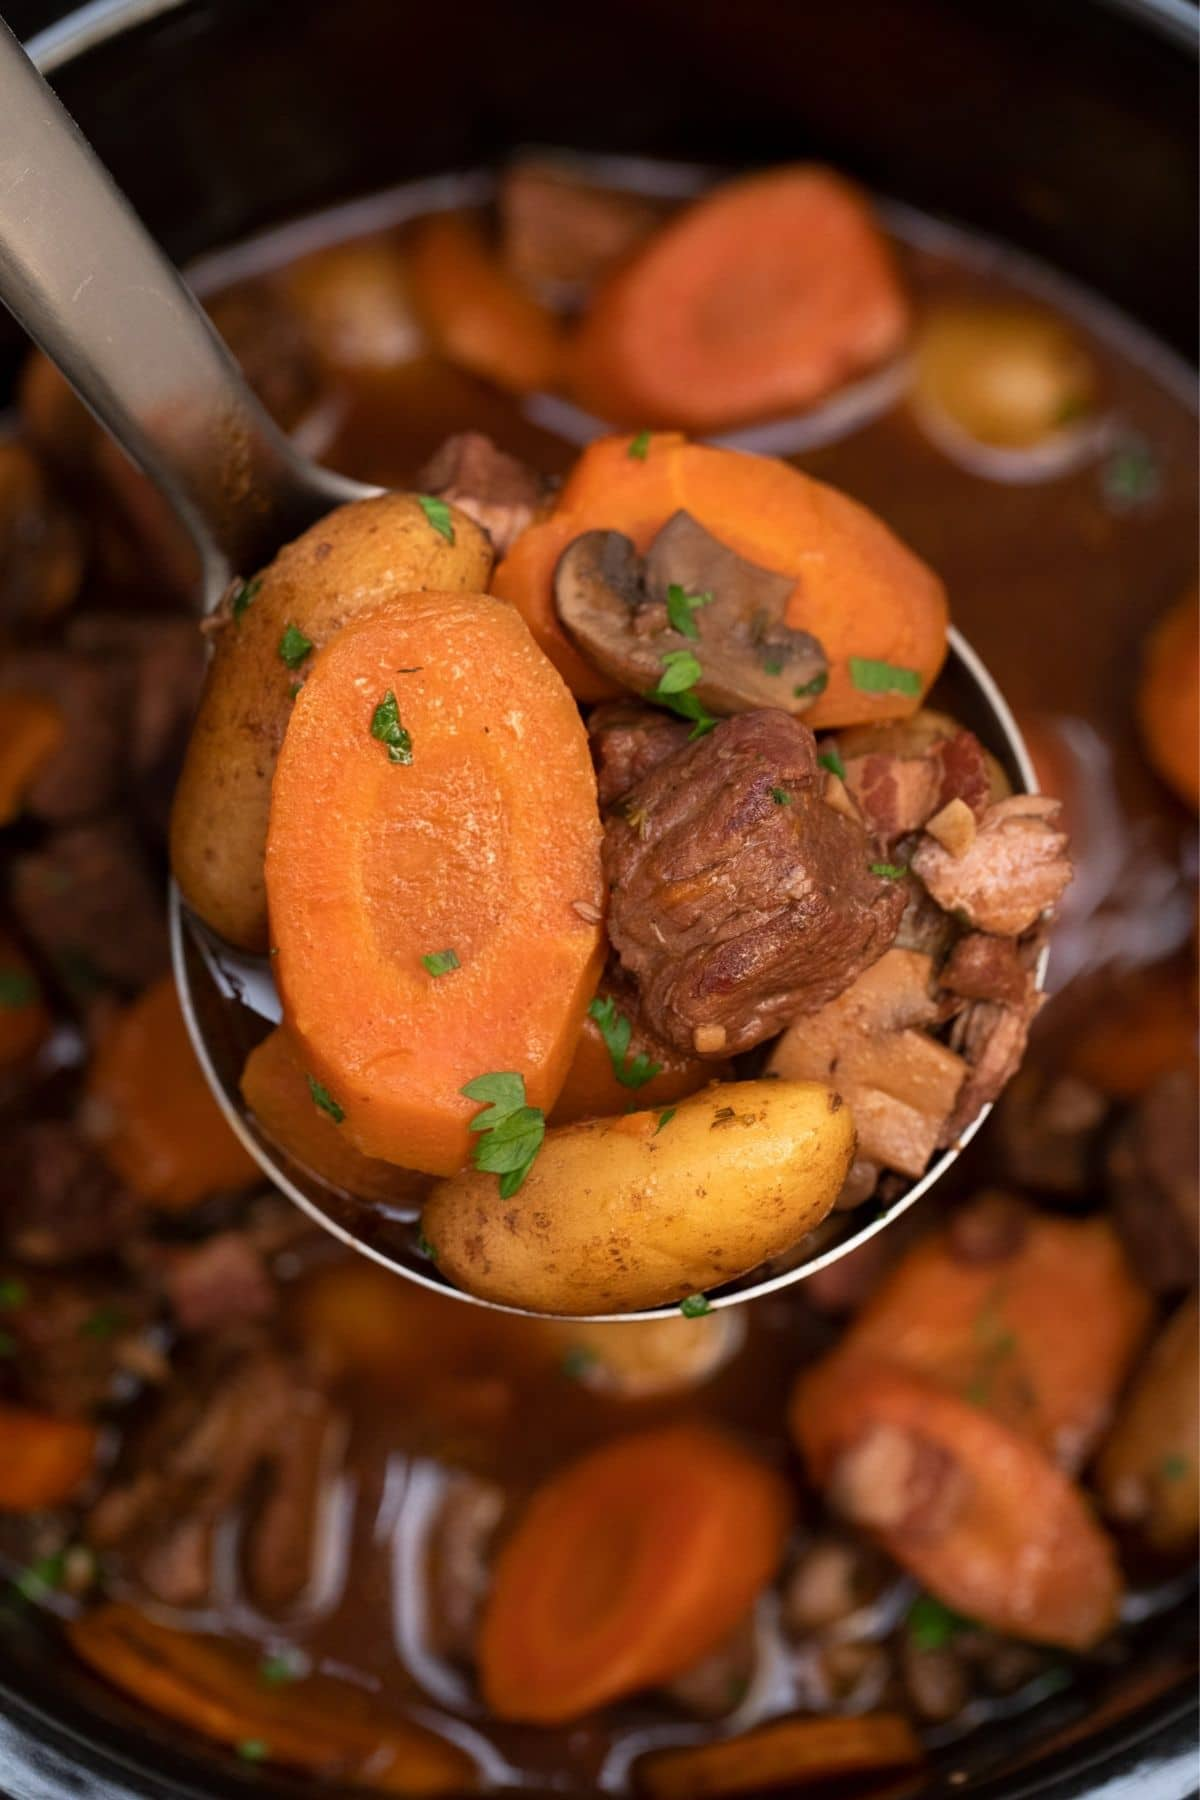 Spoon of beef and carrots over slow cooker